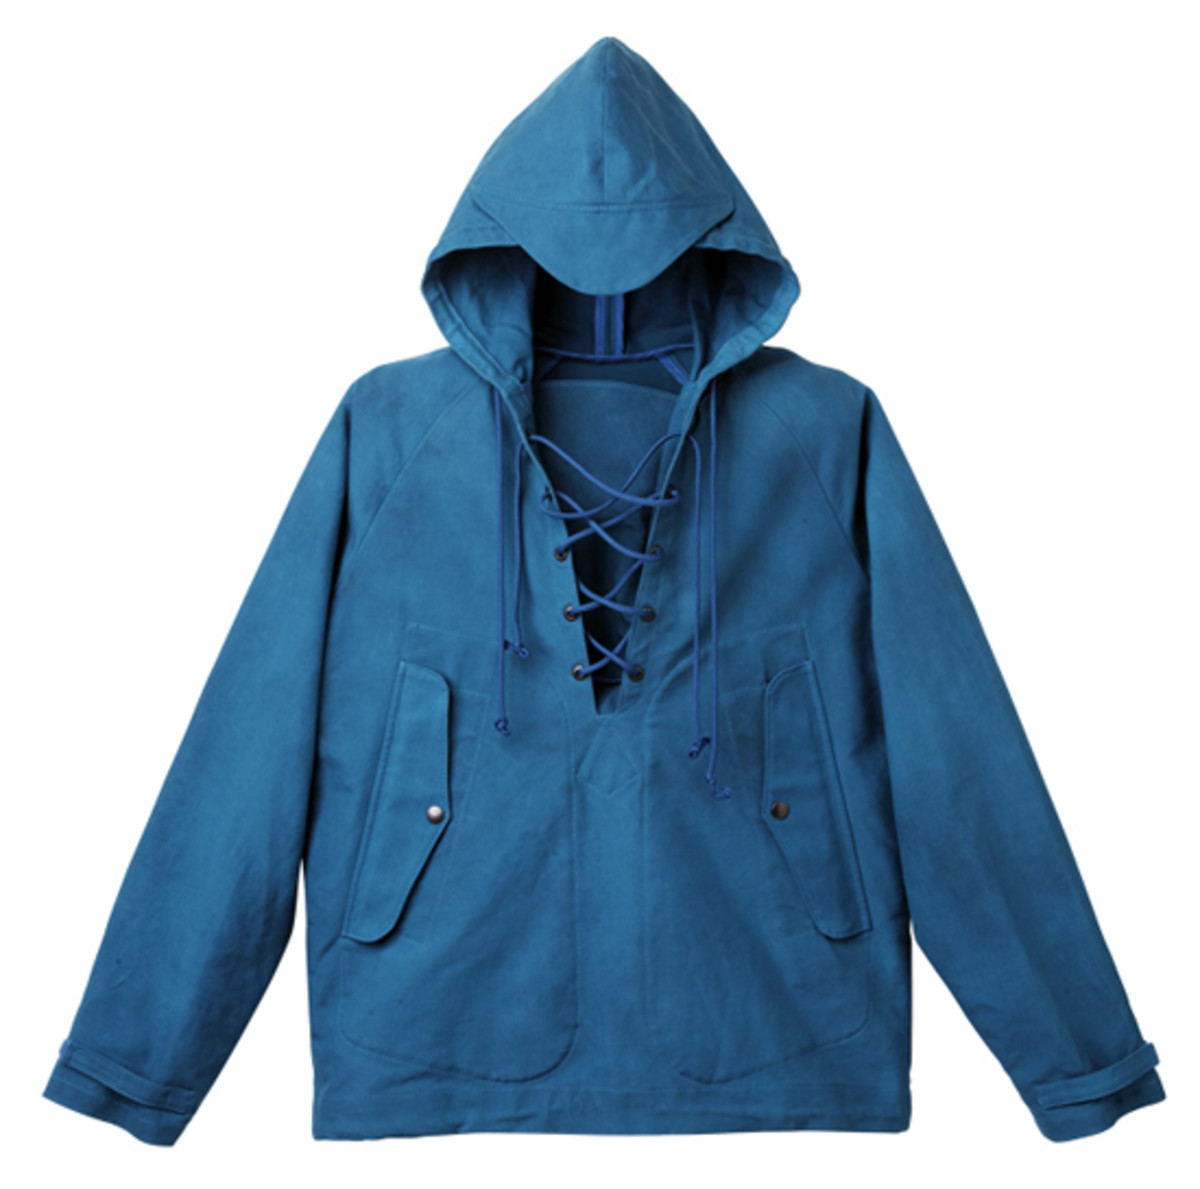 full-metal-anorak-jacket-blue